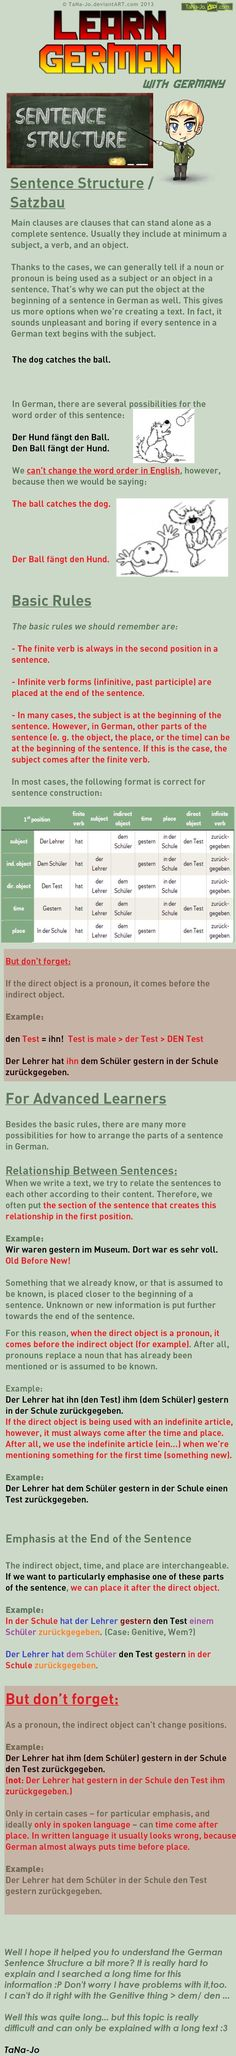 German sentence structure